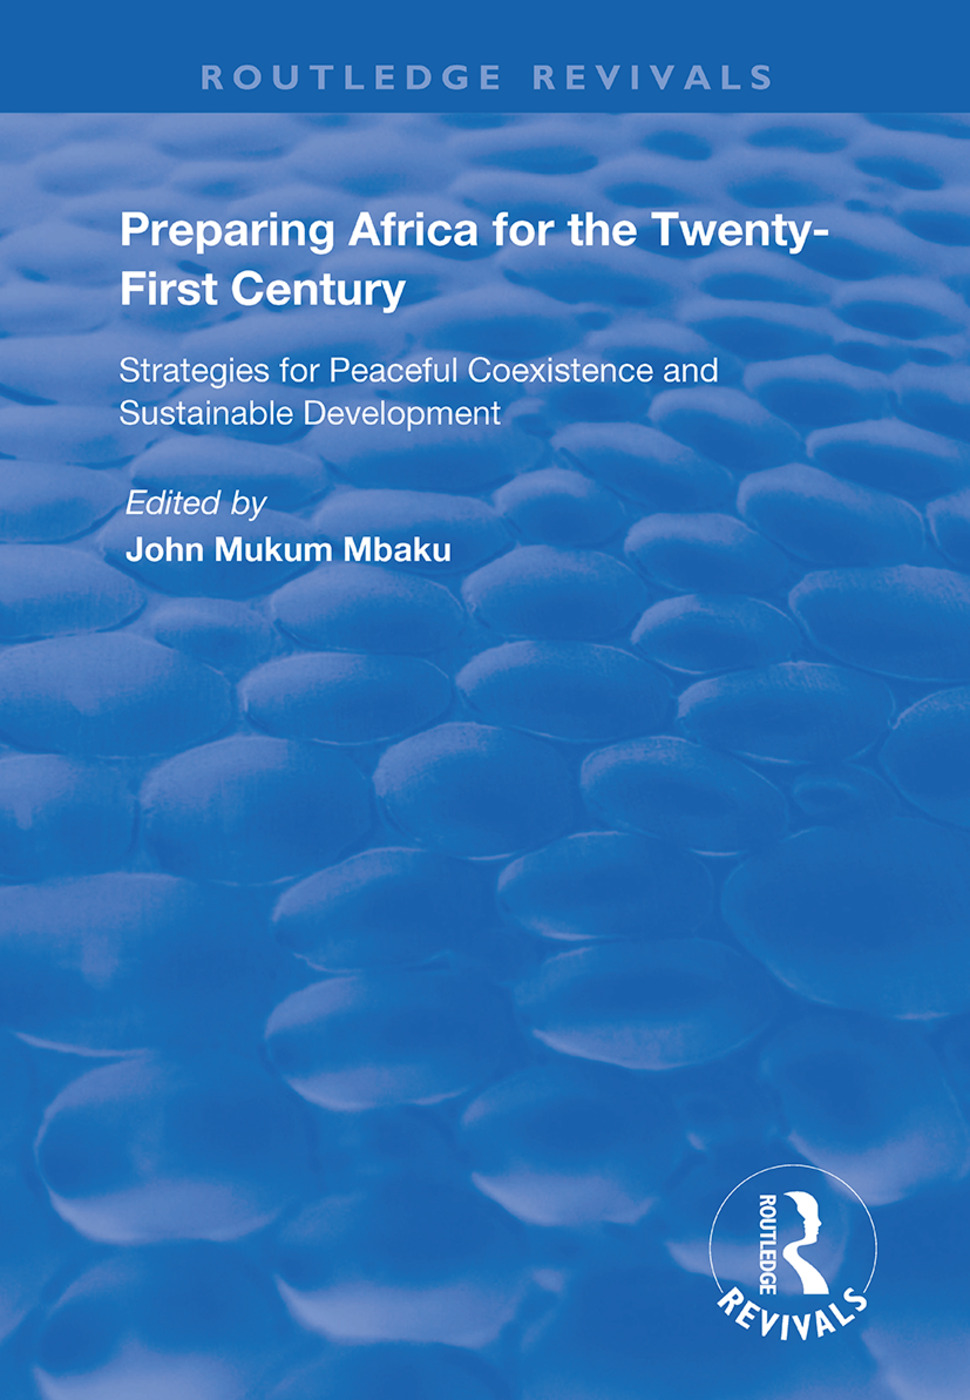 Preparing Africa for the Twenty-First Century: Strategies for Peaceful Coexistence and Sustainable Development book cover